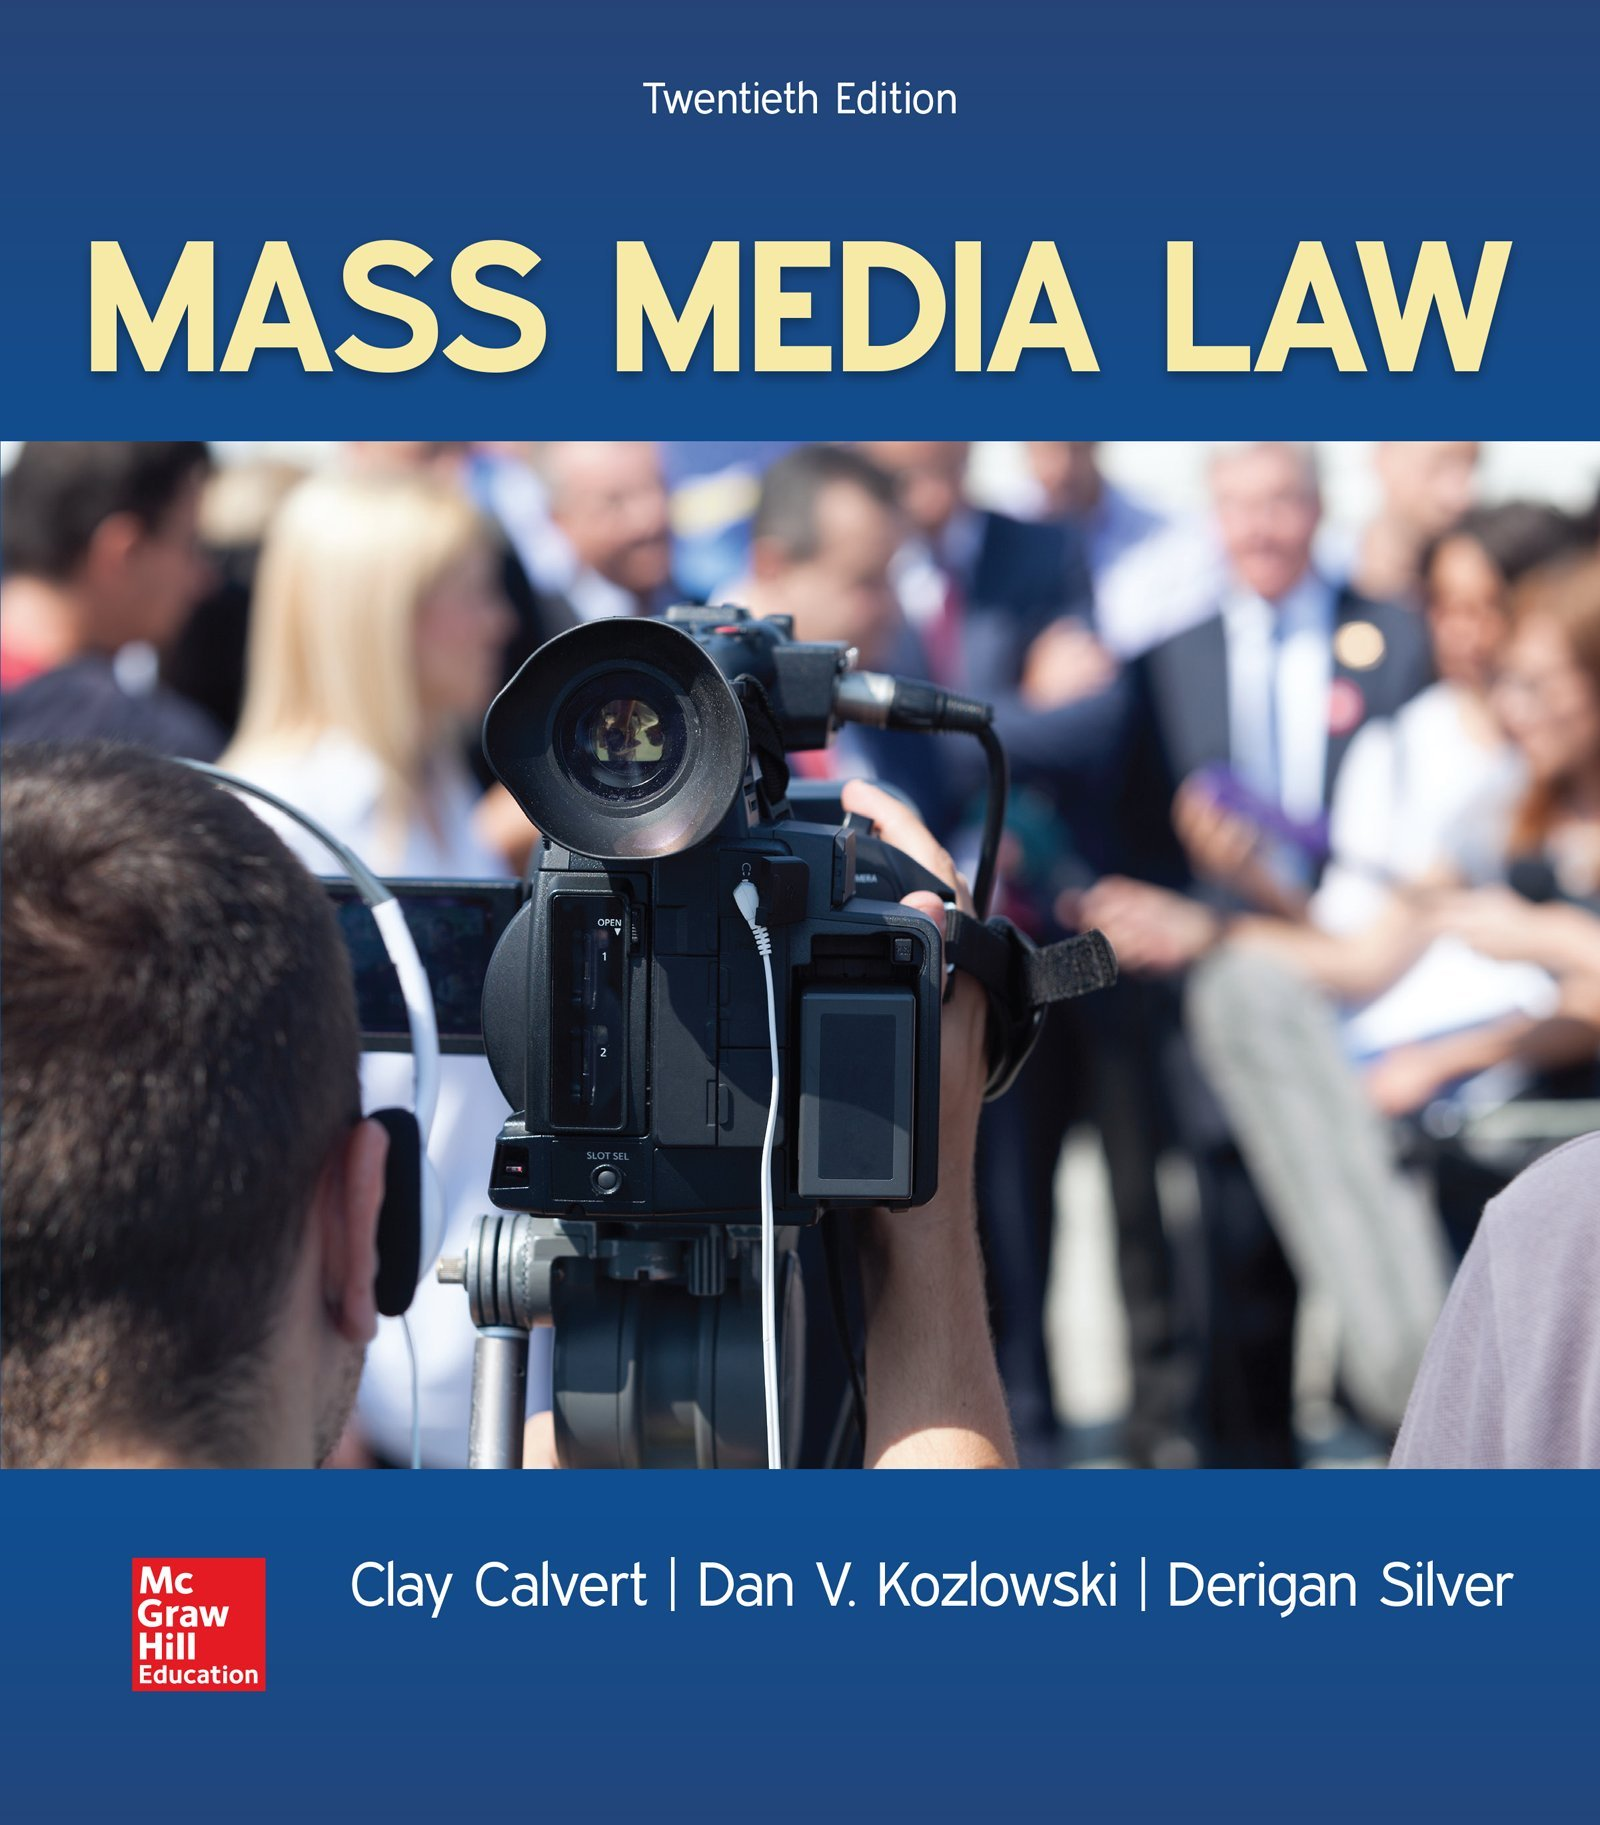 Mass Media Law by McGraw-Hill Education